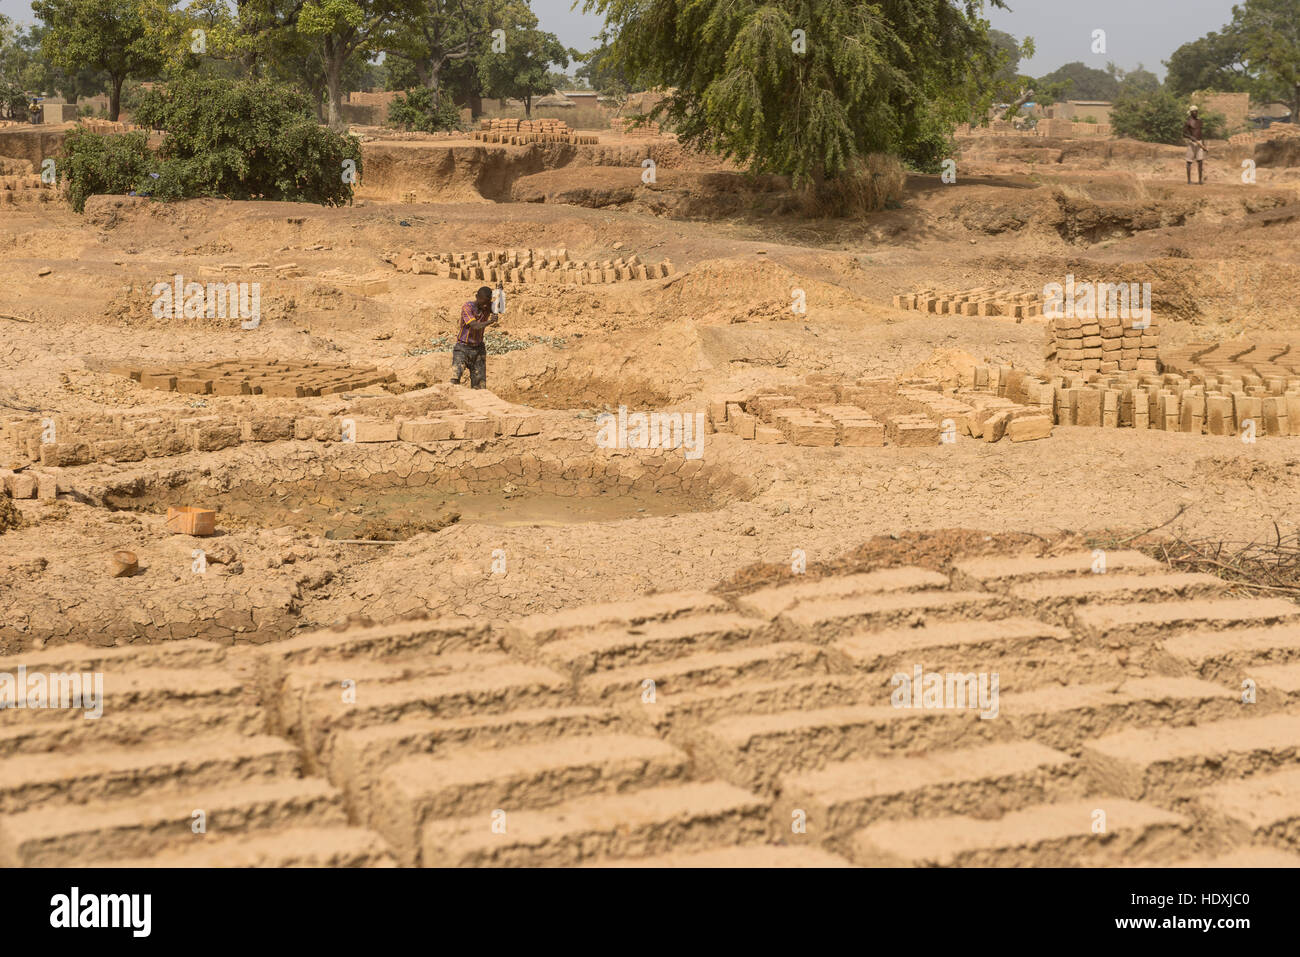 Brick quarry, Burkina Faso - Stock Image